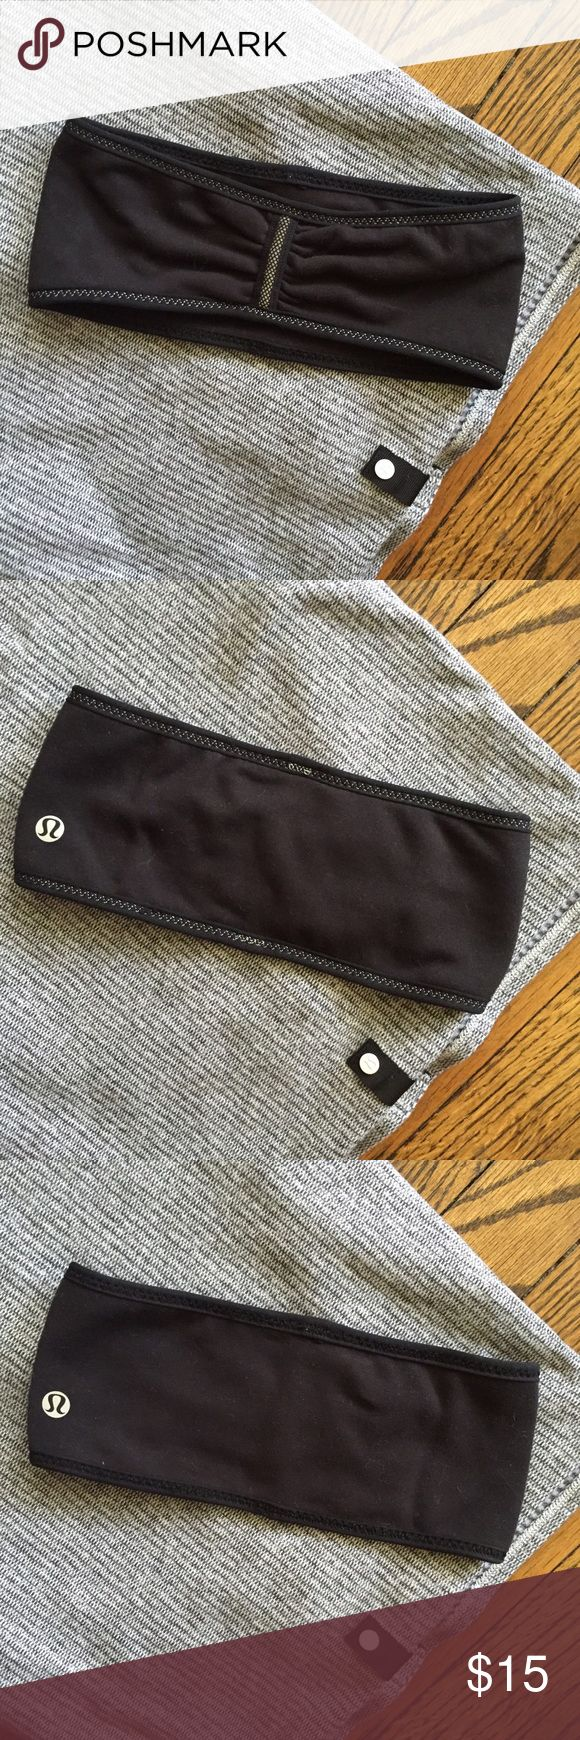 Lululemon ear warmer head band Luon black head band by Lululemon. So cute! It's reversible. Perfect for your outdoor workout or to and from. In excellent condition. No trades. Don't forget to bundle! Great stocking stuffer 😋 lululemon athletica Accessories Hair Accessories